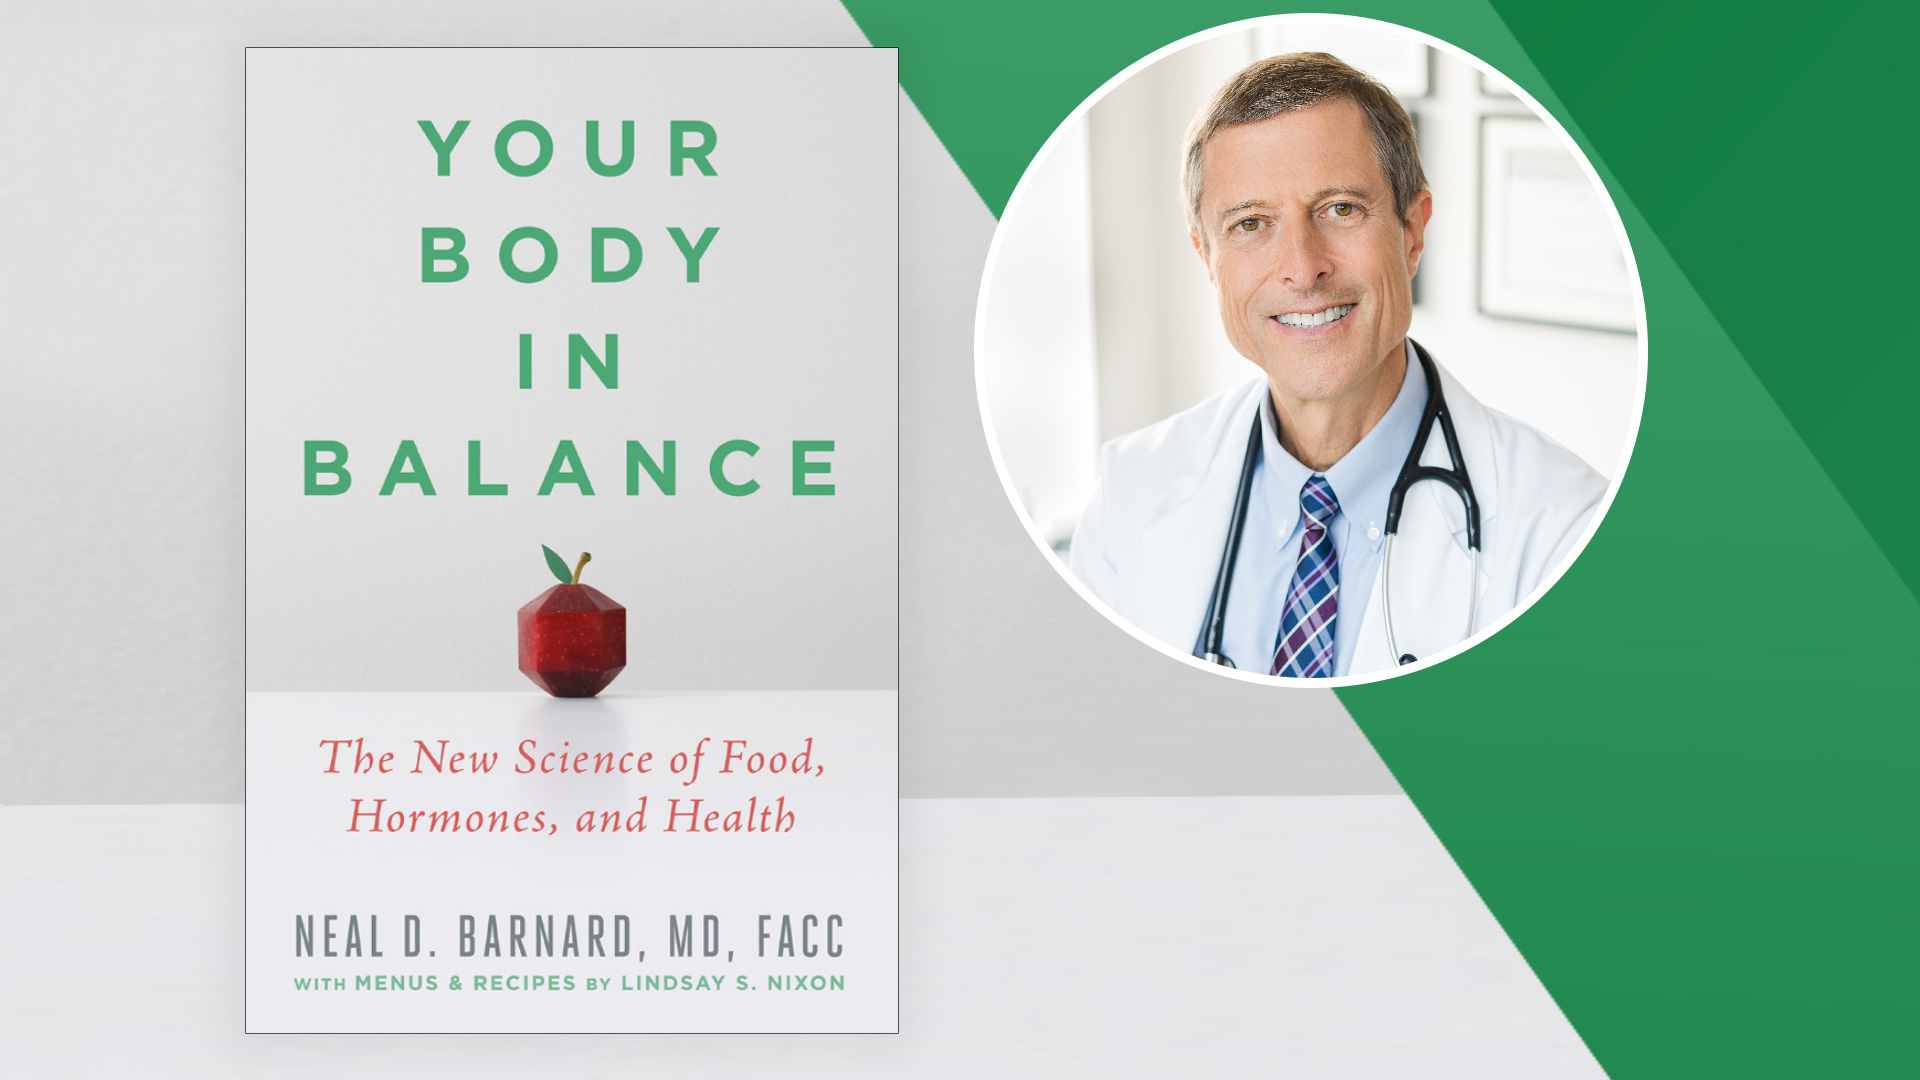 Your Body in Balance Lecture Tour with Neal Barnard, MD, FACC